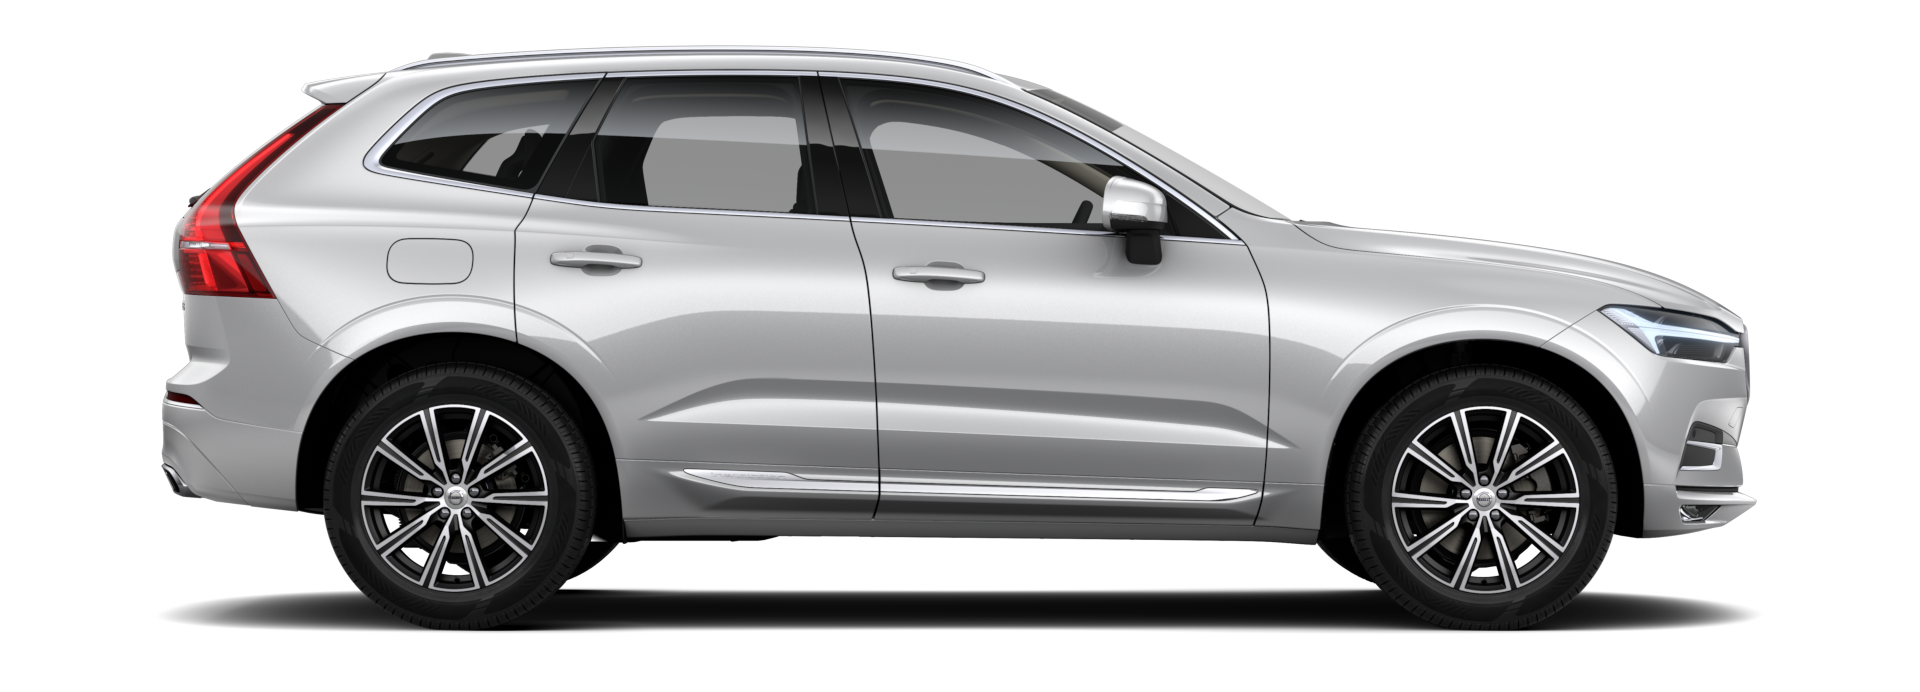 2018 Volvo XC60 Info, Price, and Specs | Lovering Volvo Cars Concord